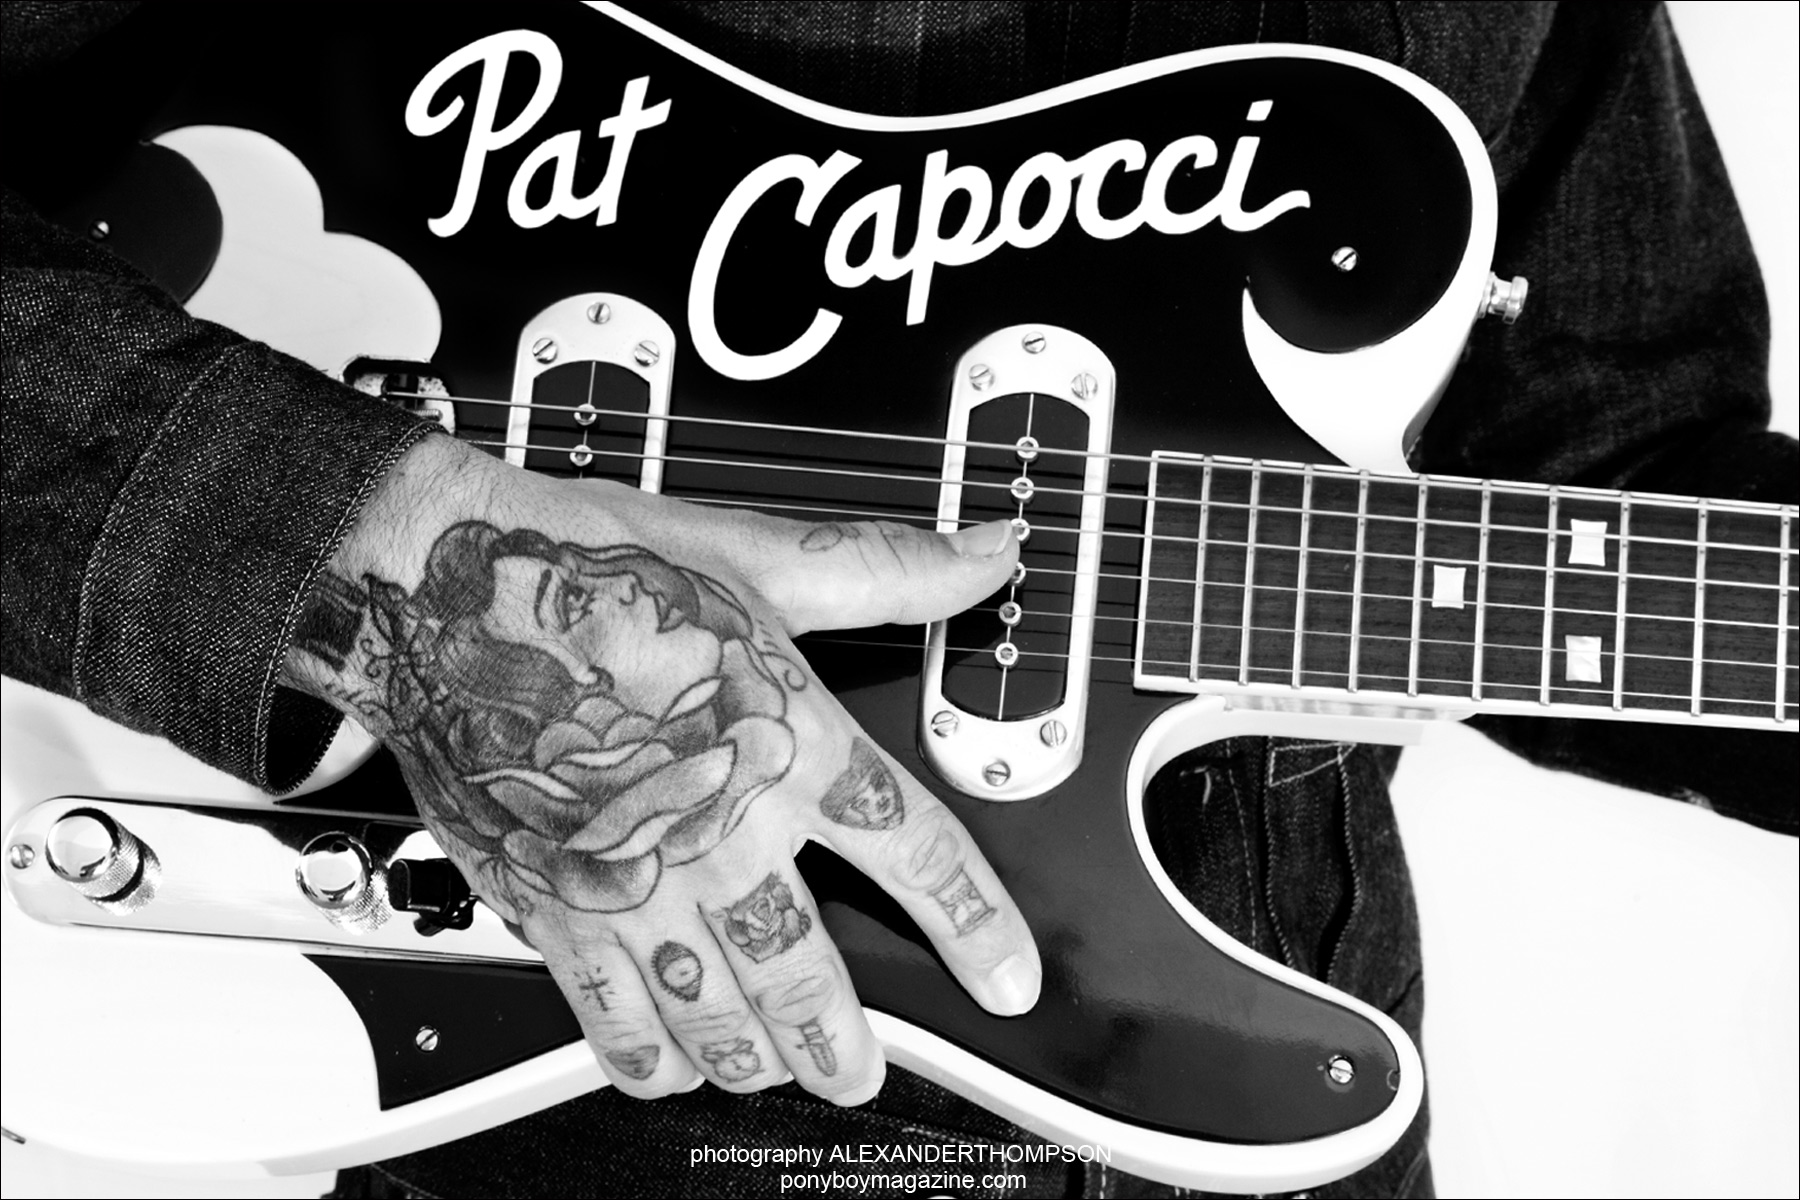 Rockabilly musician Pat Capocci for Ponyboy Magazine, photographed by Alexander Thompson.